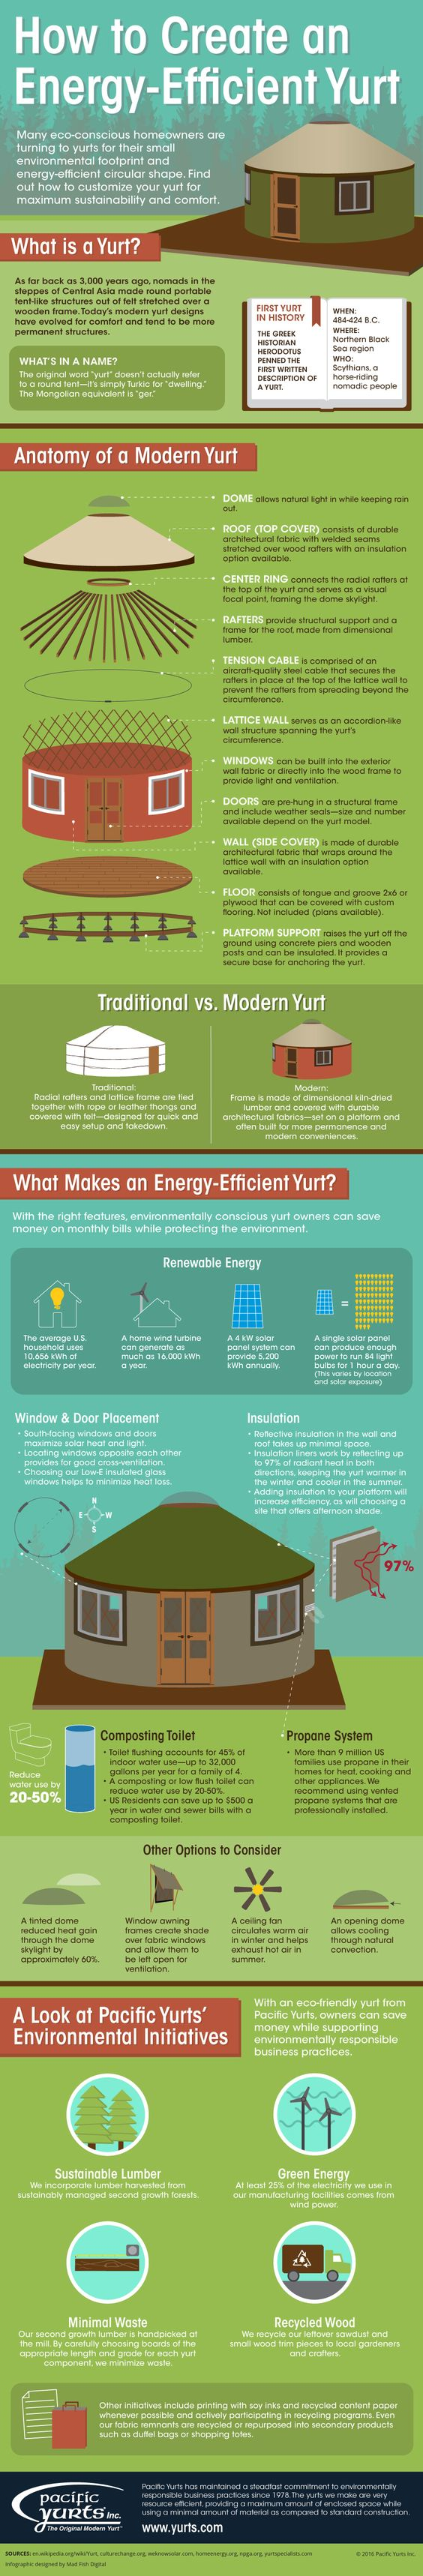 How to Create an Energy-Efficient Yurt [Infographic]